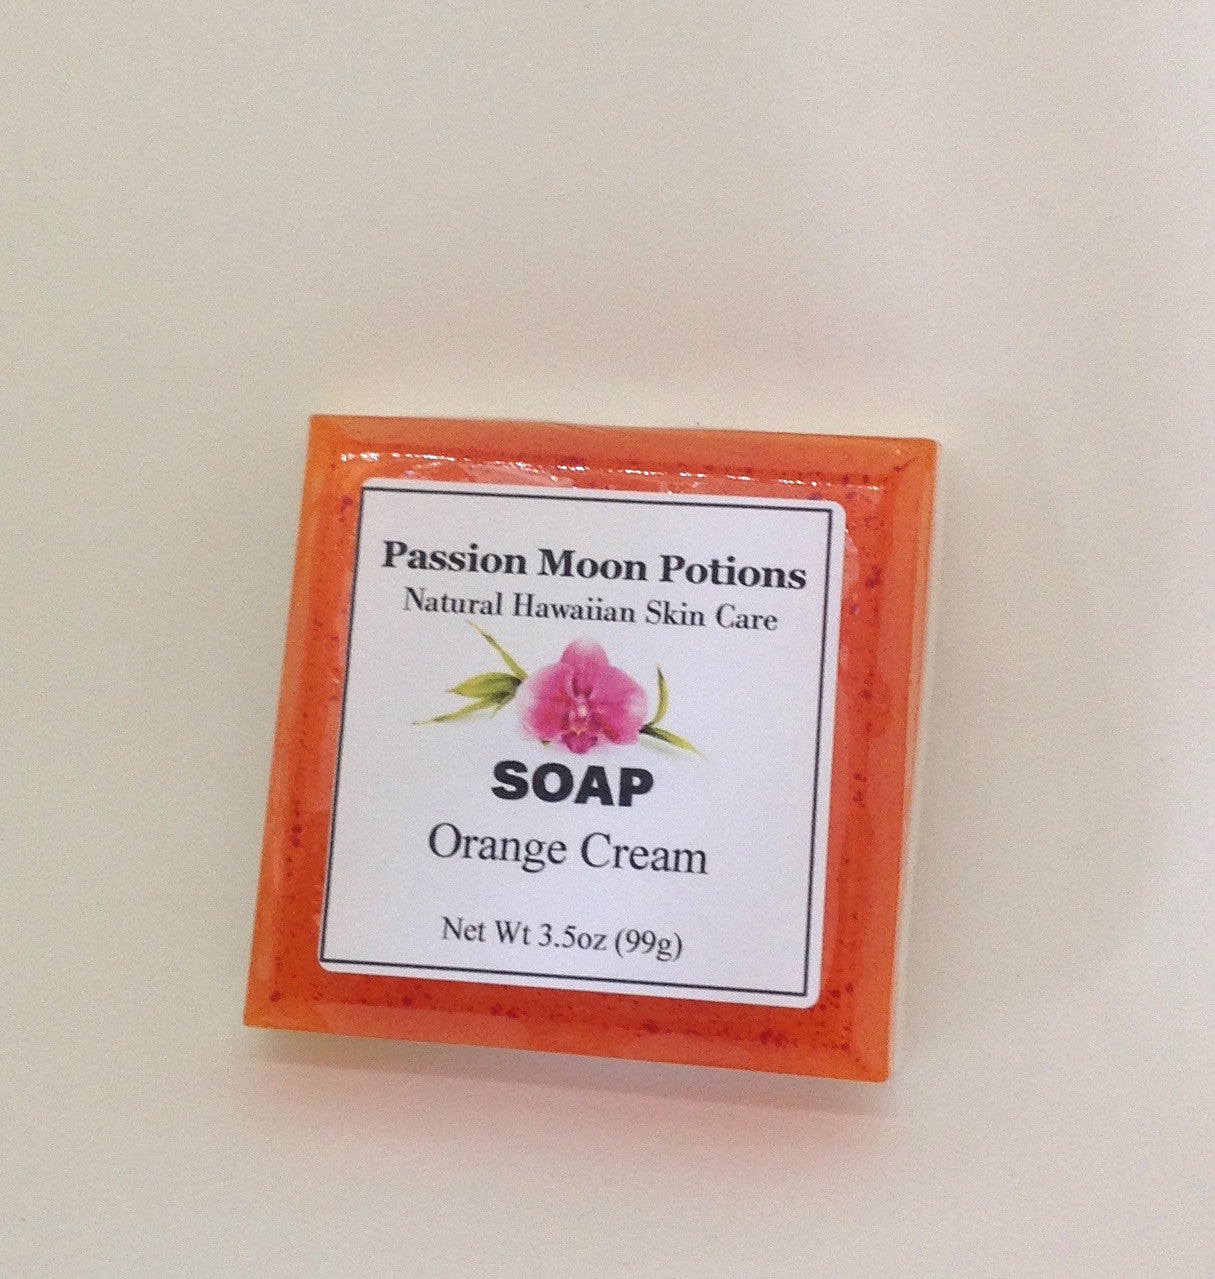 Orange Cream Soap - Passion Moon Potions - 2